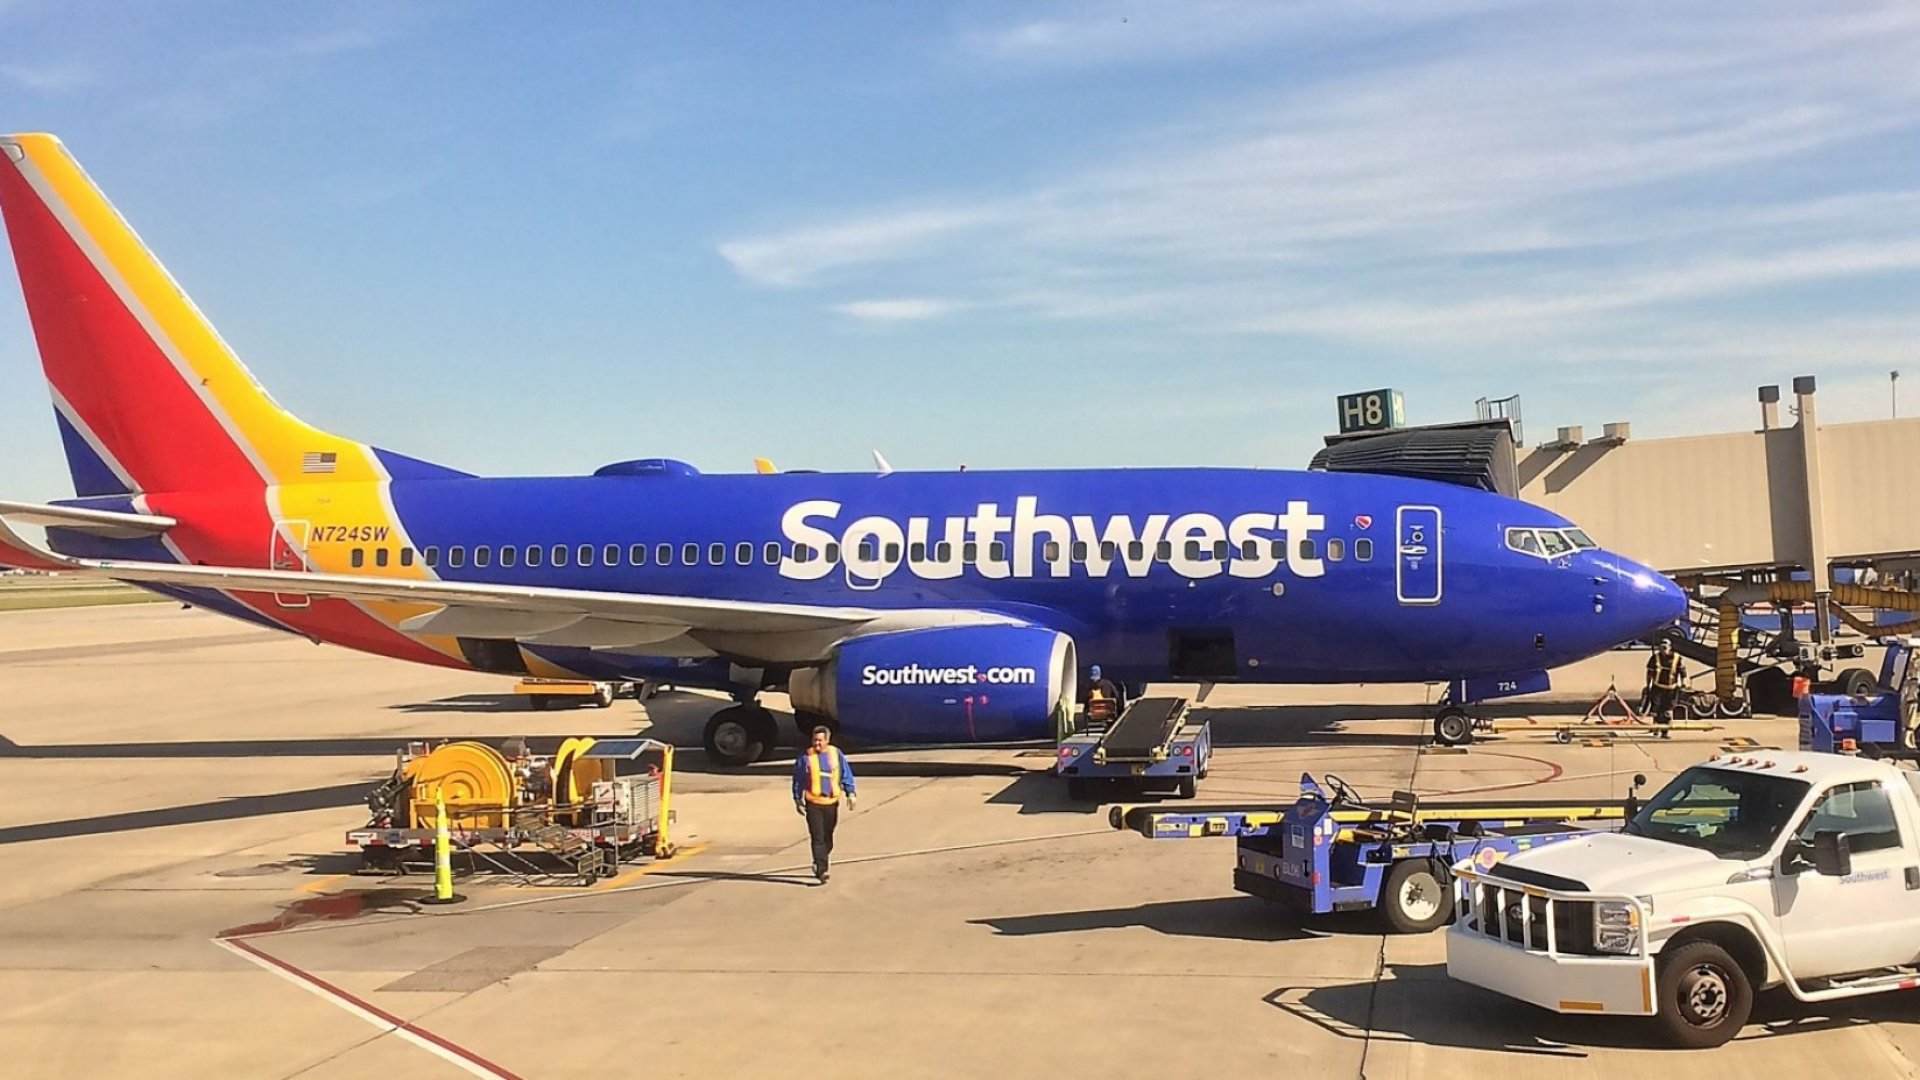 Southwest Airlines Had a Brilliant Reaction When a Passenger's Wi-Fi Wouldn't Work